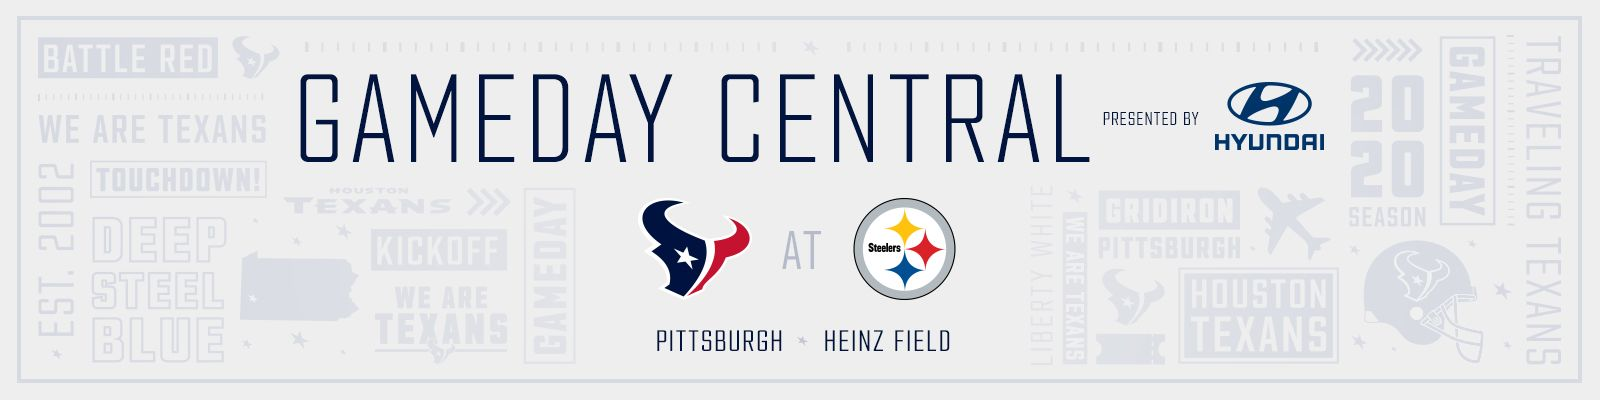 Gameday Central